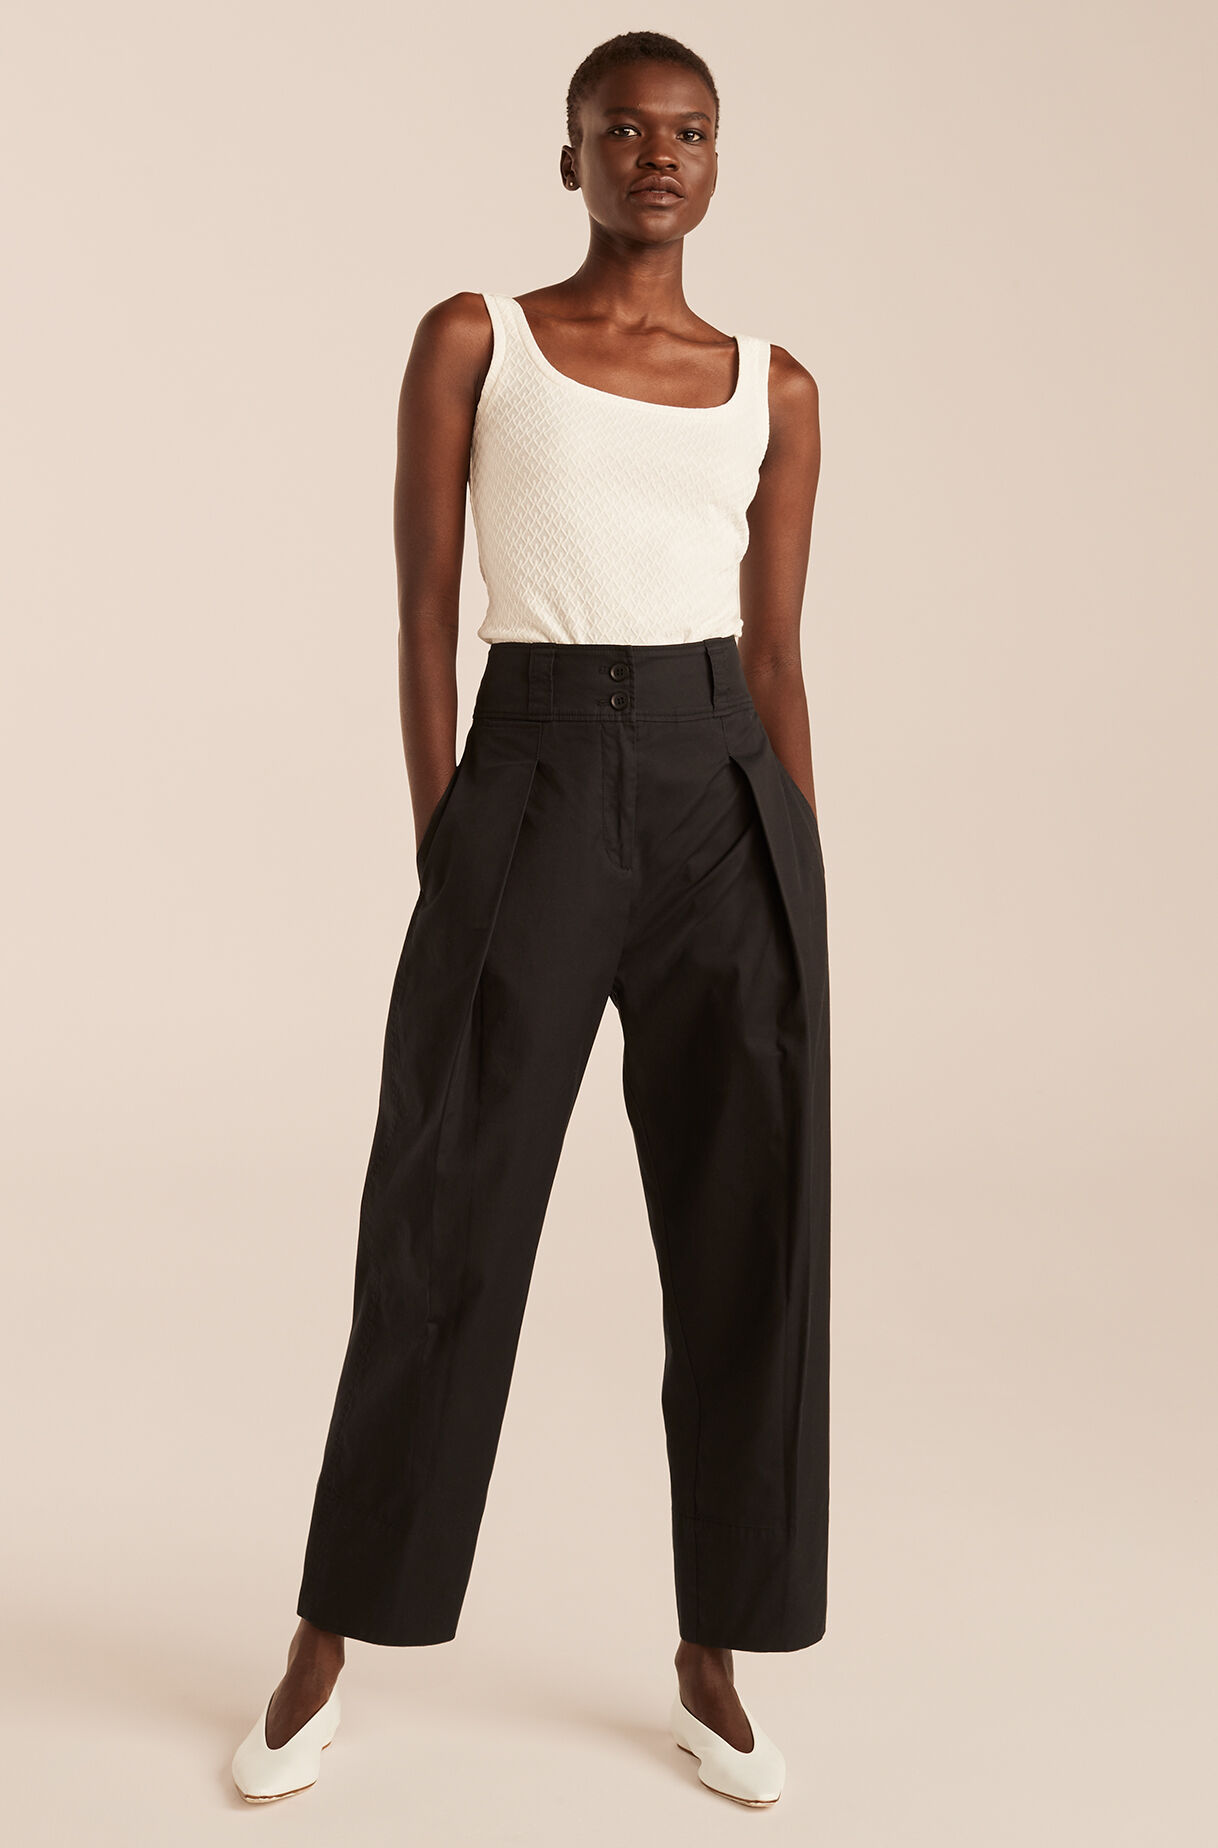 Casual Full Tapered Pant, , large